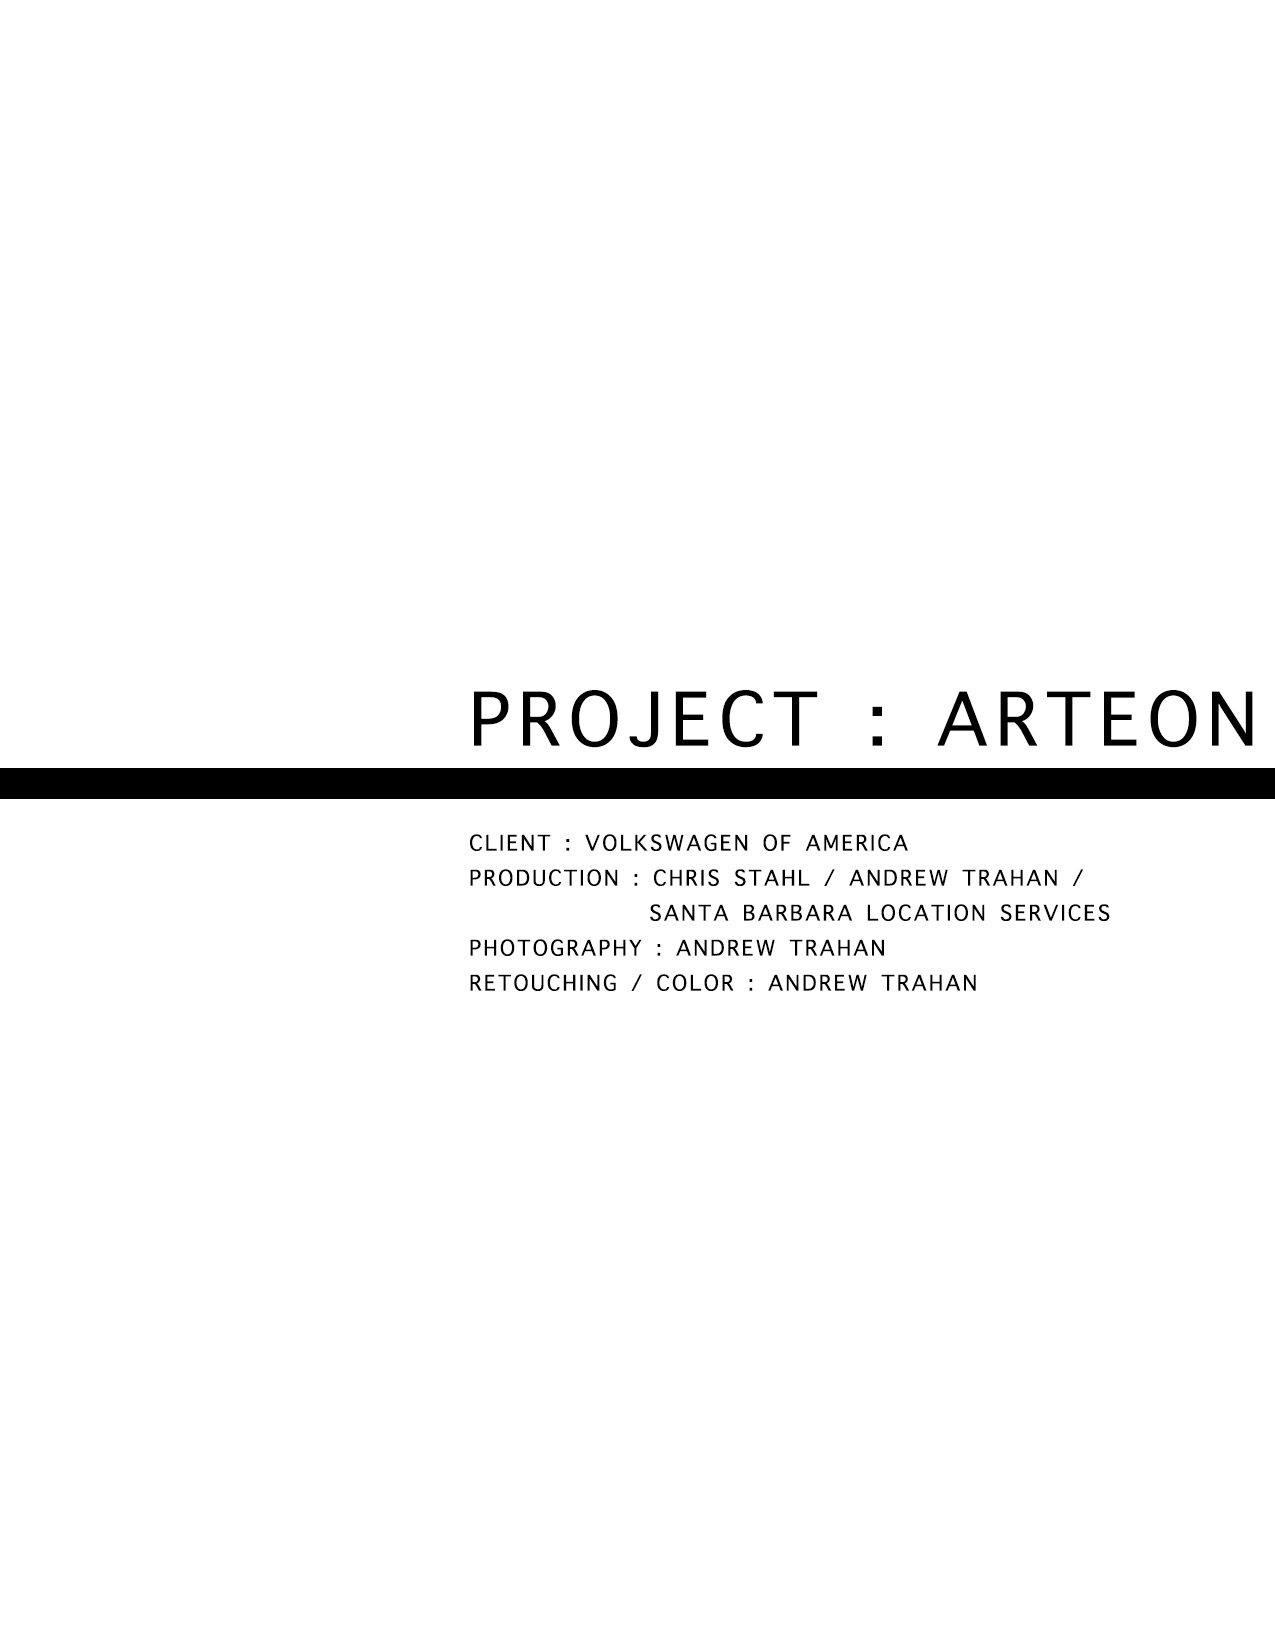 PROJECT---OPENER-PAGE-ARTEON